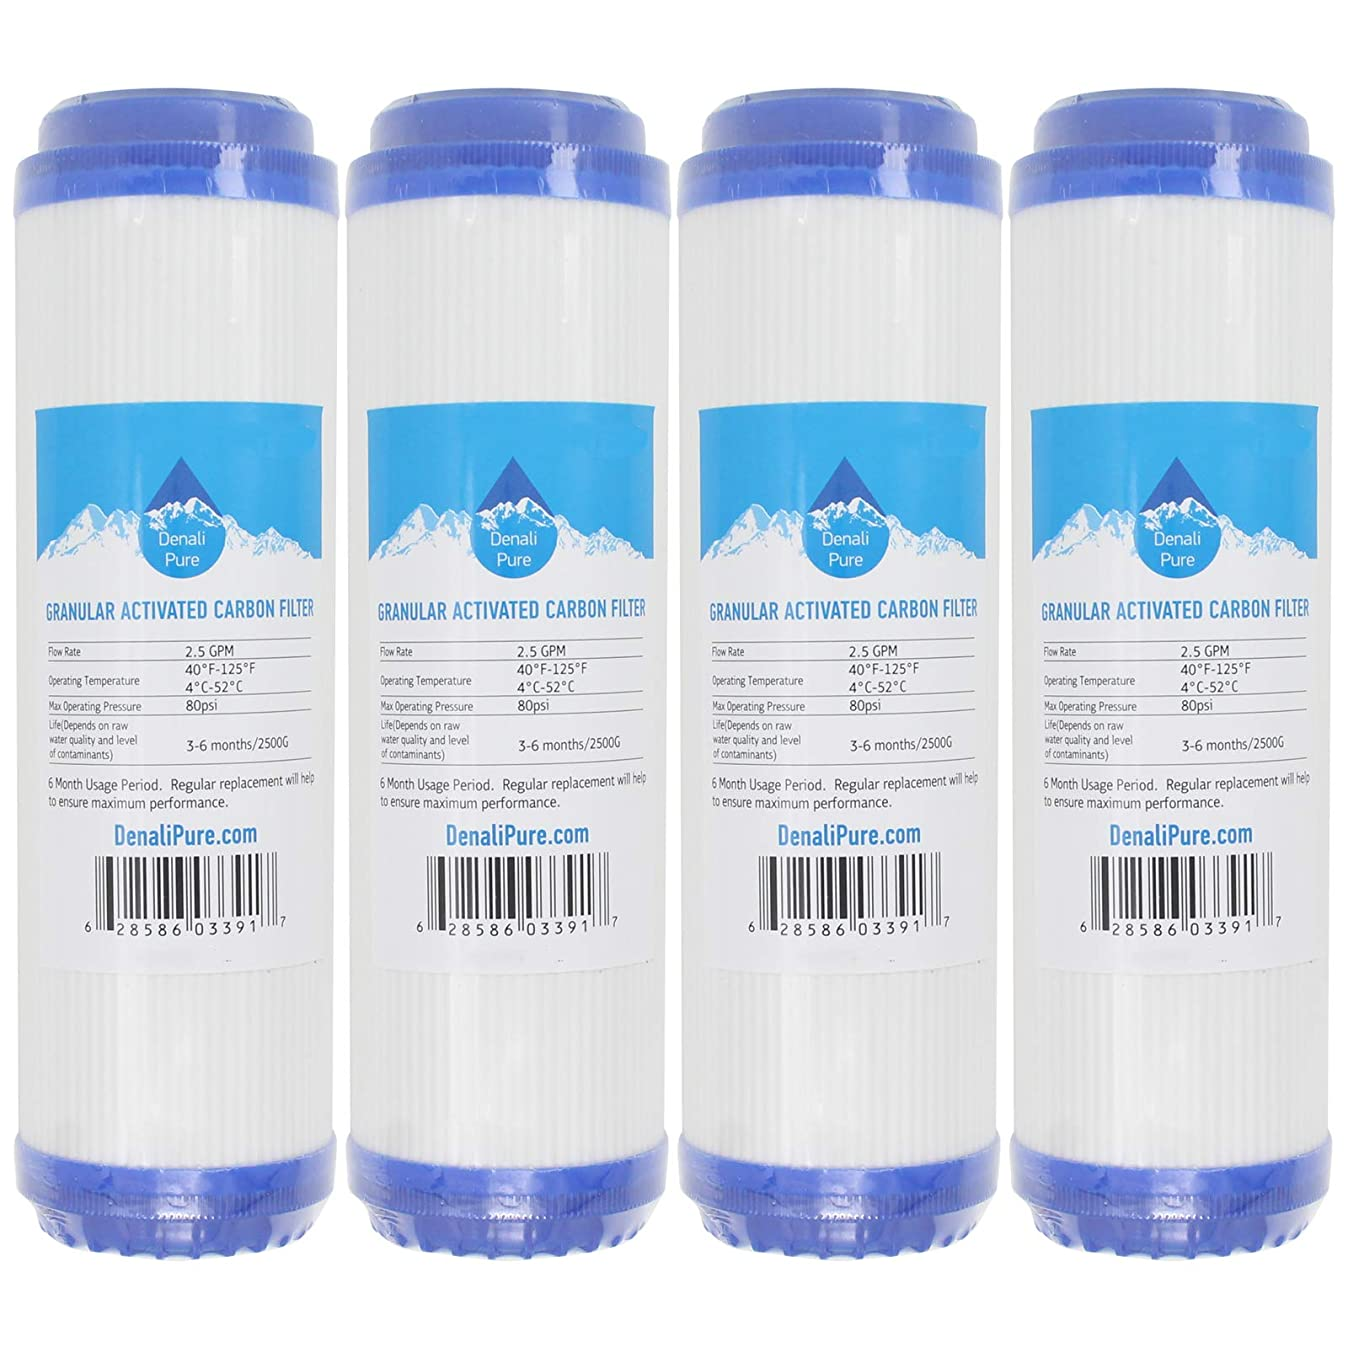 4-Pack Replacement for Compatible with WaterPur CCI10CLW12 Granular Activated Carbon Filter - Universal 10-inch Cartridge Compatible with WaterPur CCI-10-CLW12 Water Filter Housing - Denali Pure Brand j6850005653